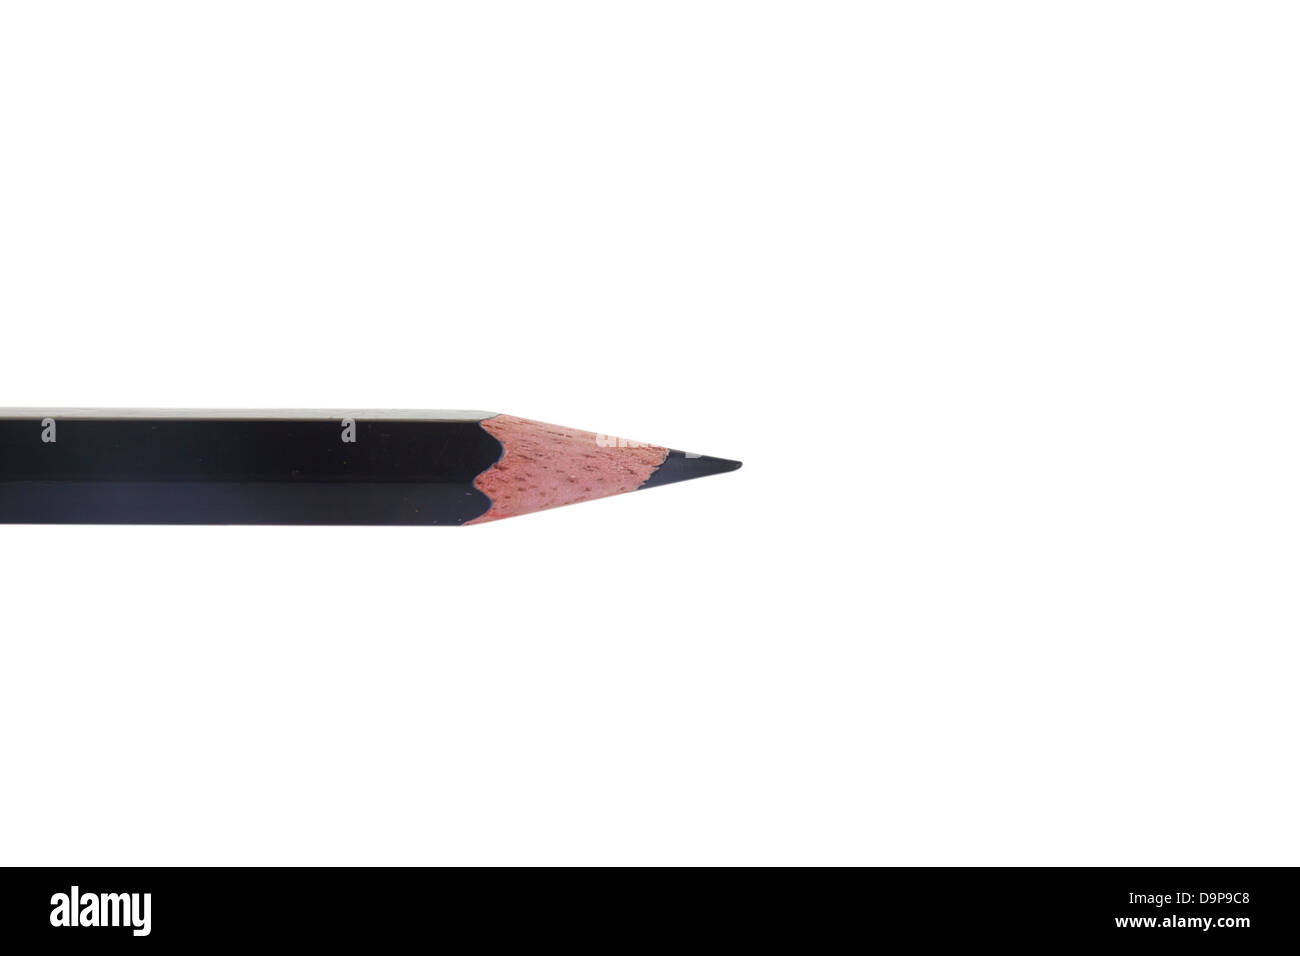 close up of a sharpened pencil stock photo 57653352 alamy